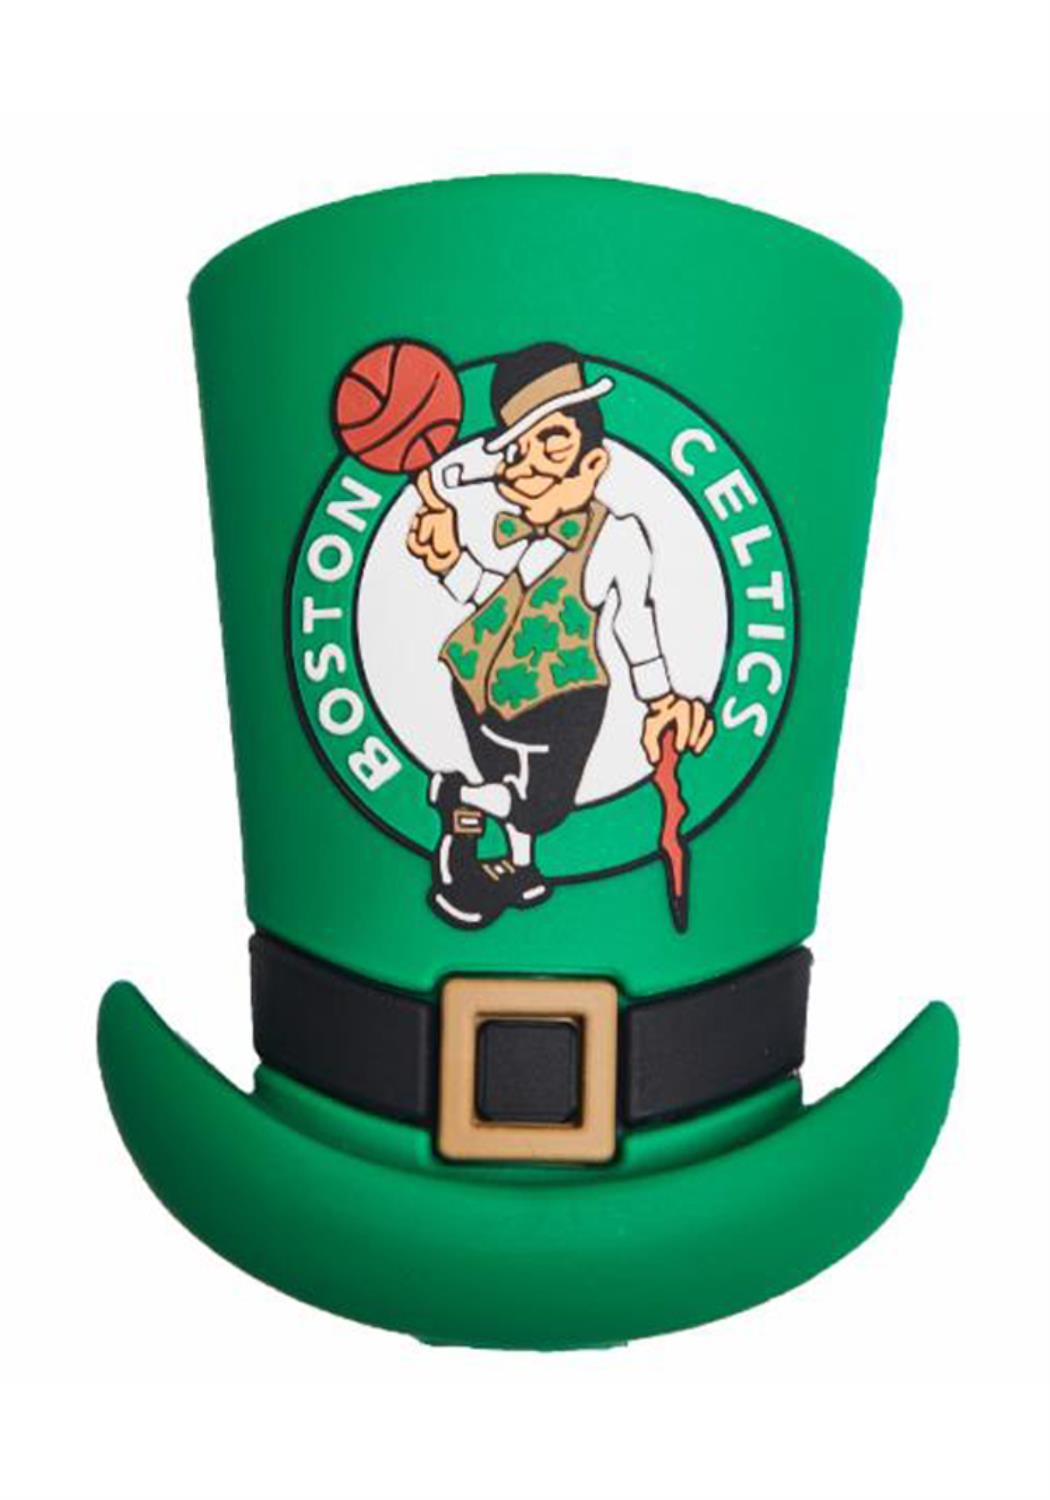 CELTICS - LUCKY HAT | OFFICIAL NBA LICENSED PHONE CHARGER